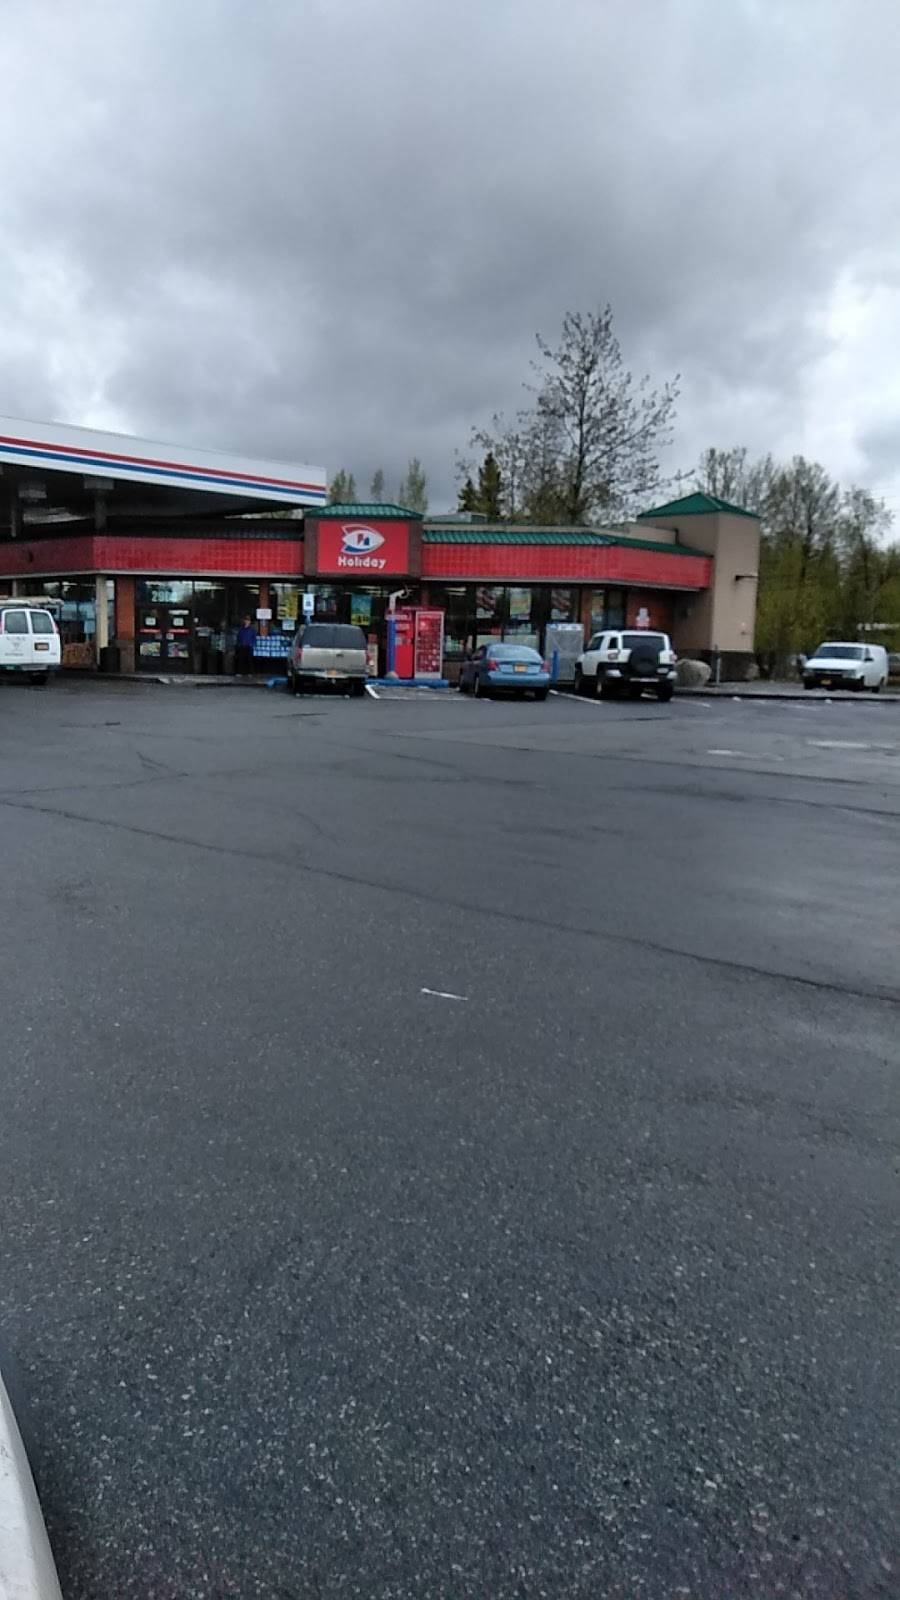 Holiday Stationstores - convenience store  | Photo 1 of 1 | Address: 2900 E Tudor Rd, Anchorage, AK 99507, USA | Phone: (907) 563-5602